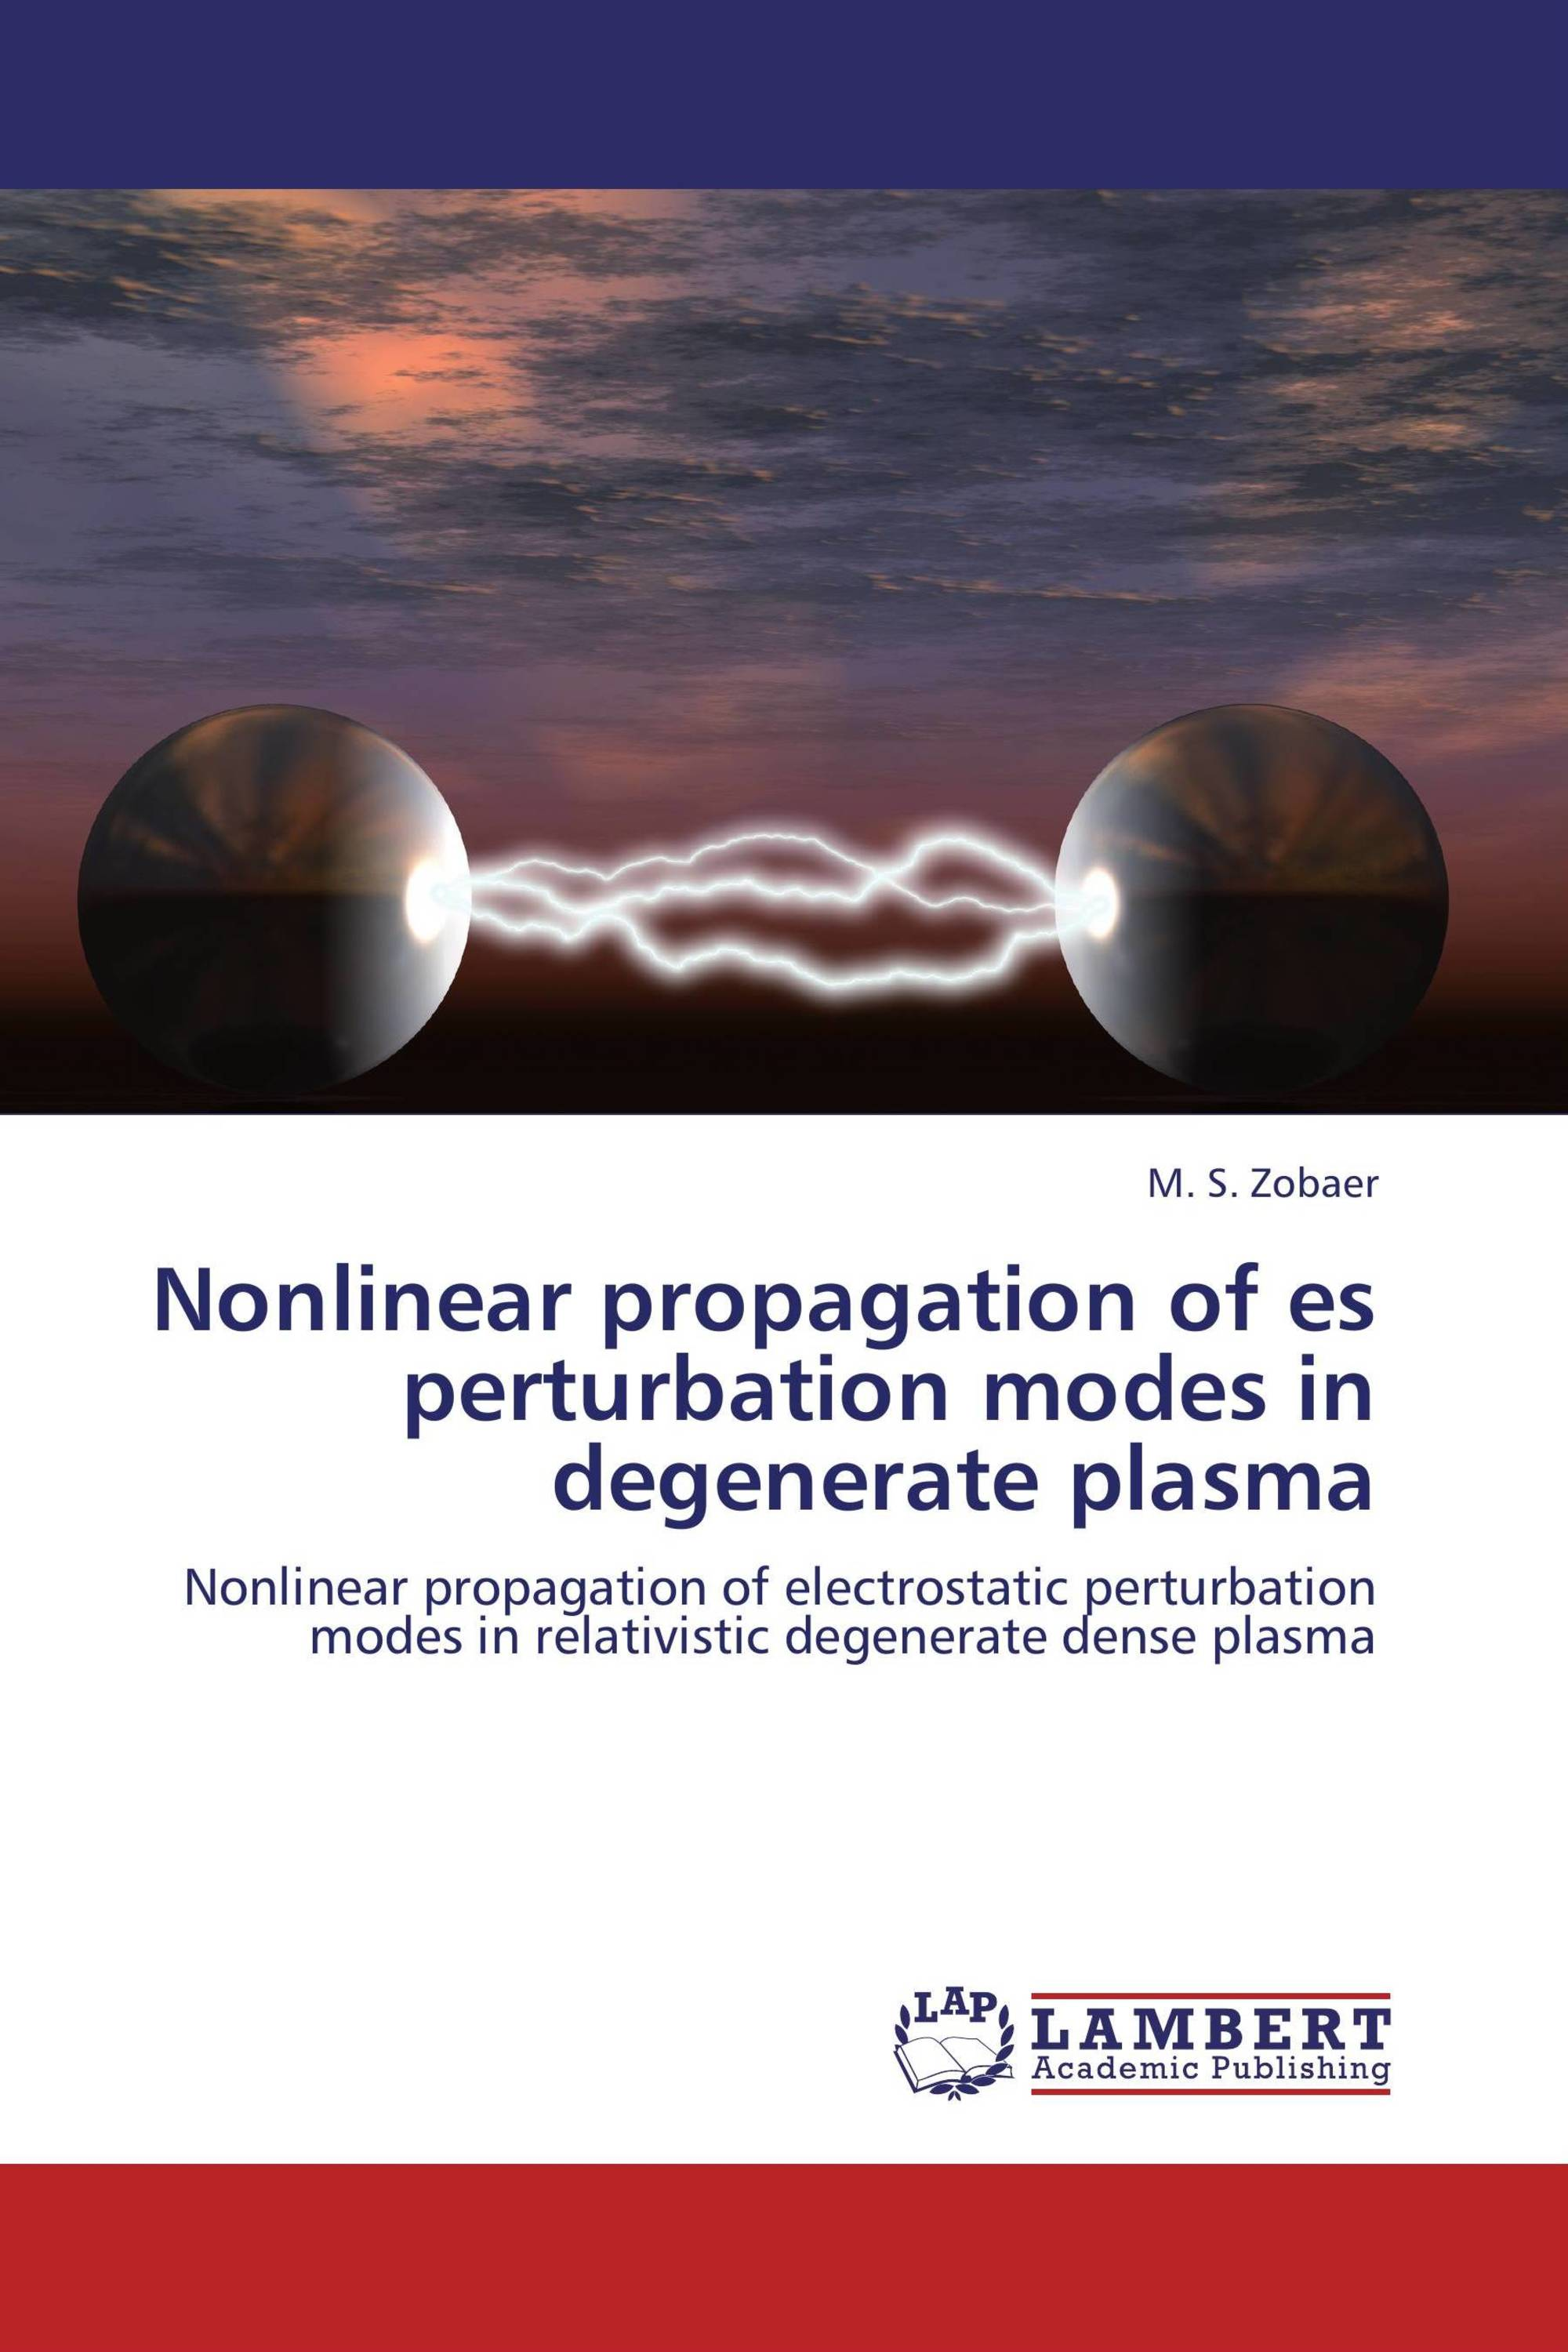 Nonlinear propagation of es perturbation modes in degenerate plasma